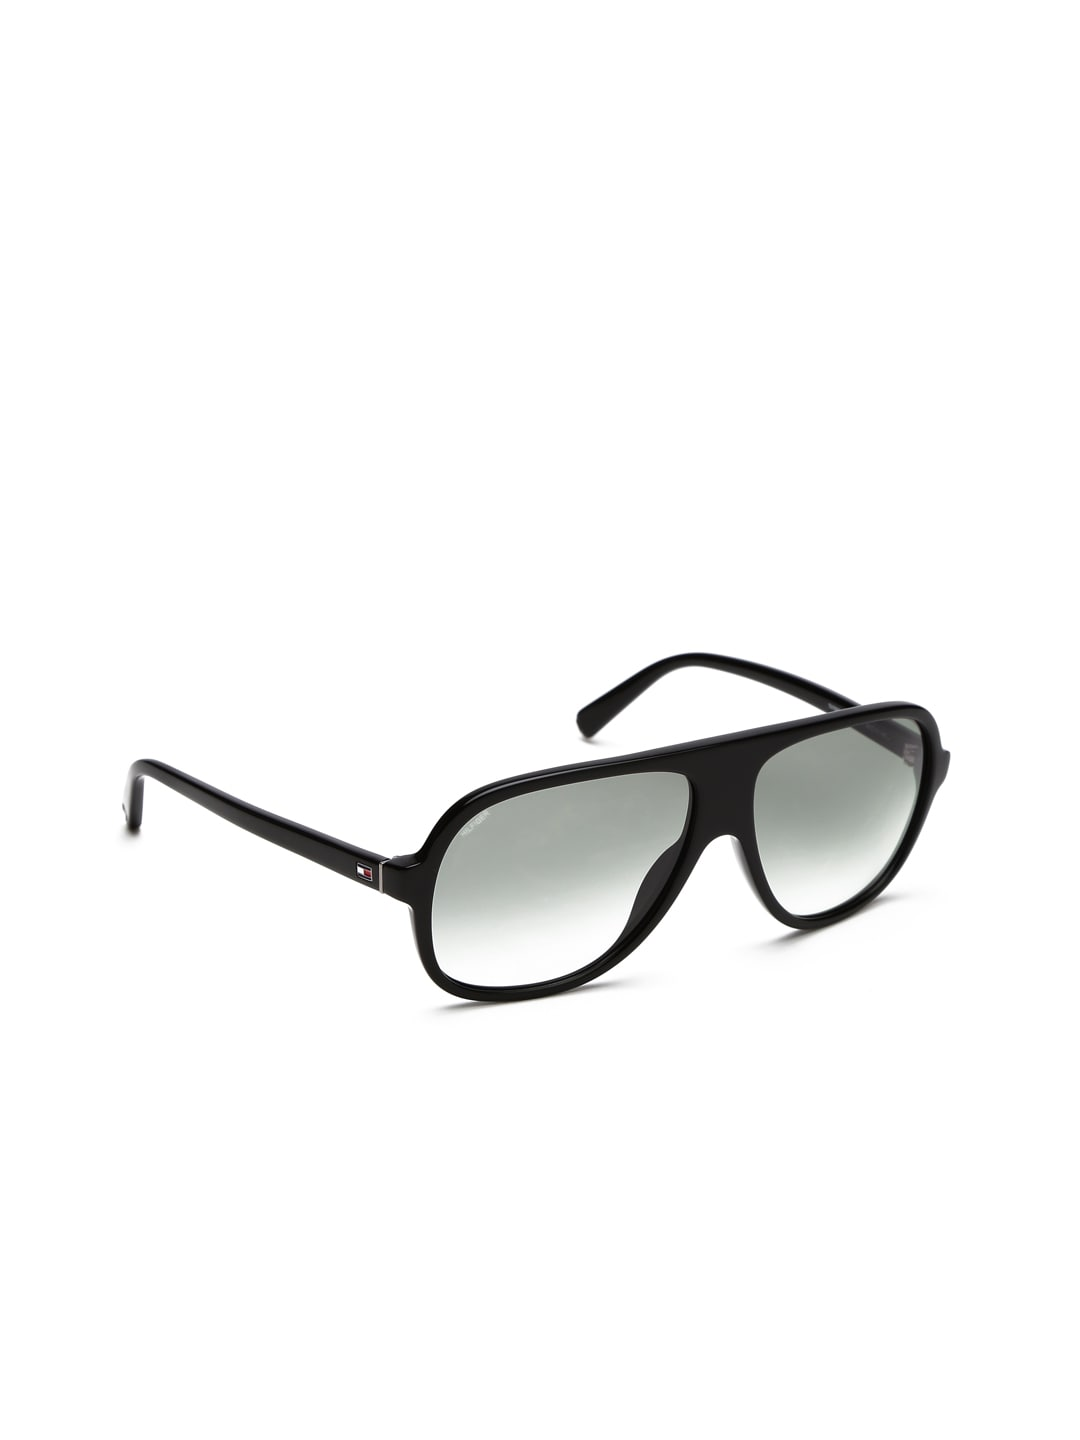 Tommy Hilfiger Sunglasses - Buy Tommy Hilfiger Sunglasses online in ...